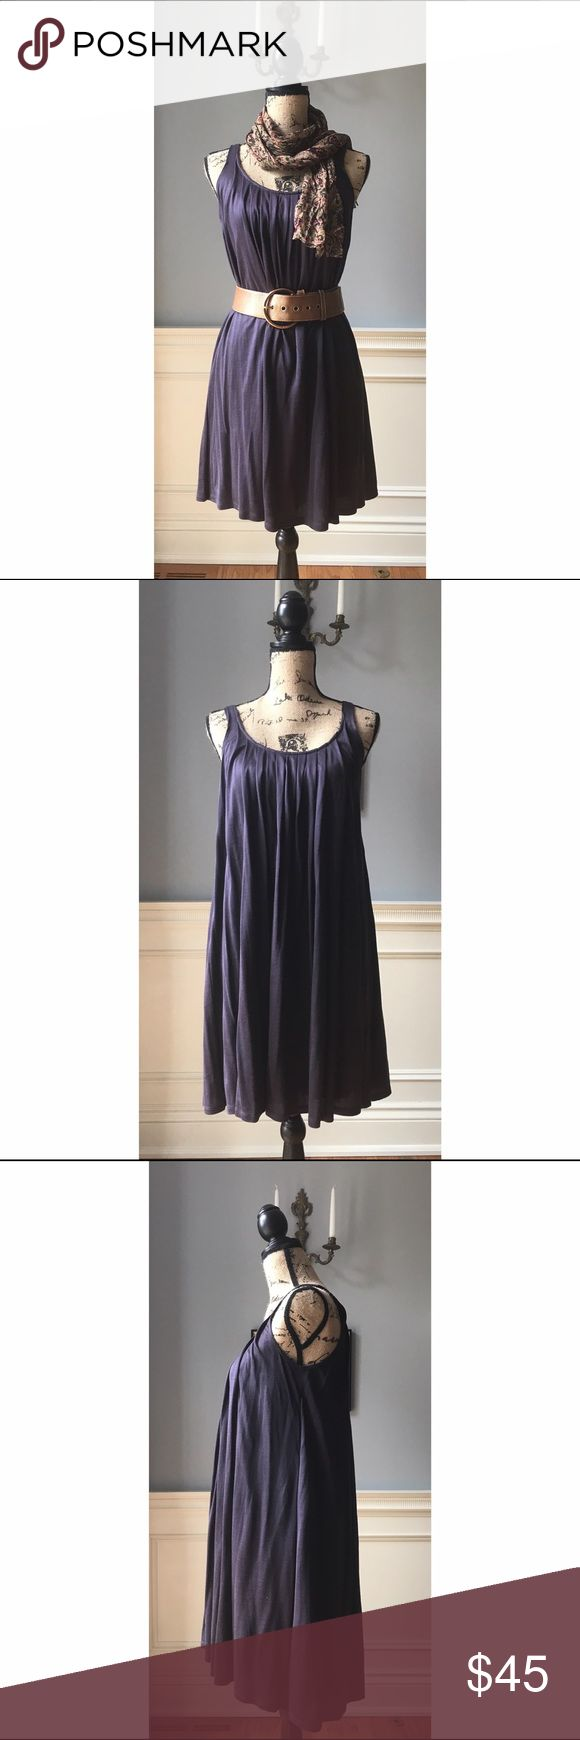 NWT Calvin Klein Eggplant Dress Sz XS NWT Calvin Klein dress, Sz XS. Almost free-size, lots of room. Perfect condition. No trades. **Belt and scarf not included!!** Calvin Klein Dresses Midi